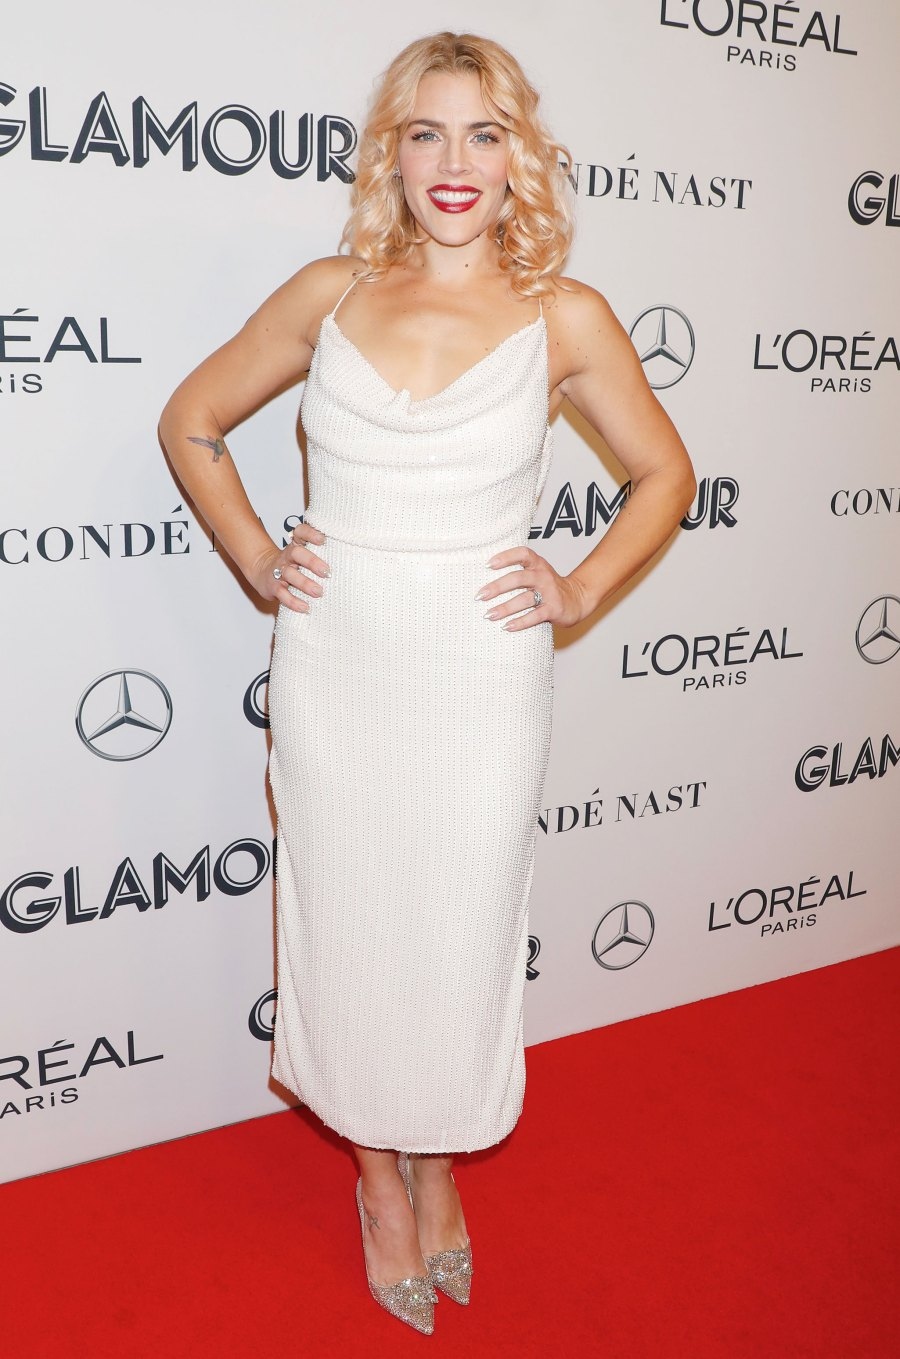 Glamour Women of the Year Awards - Busy Philipps